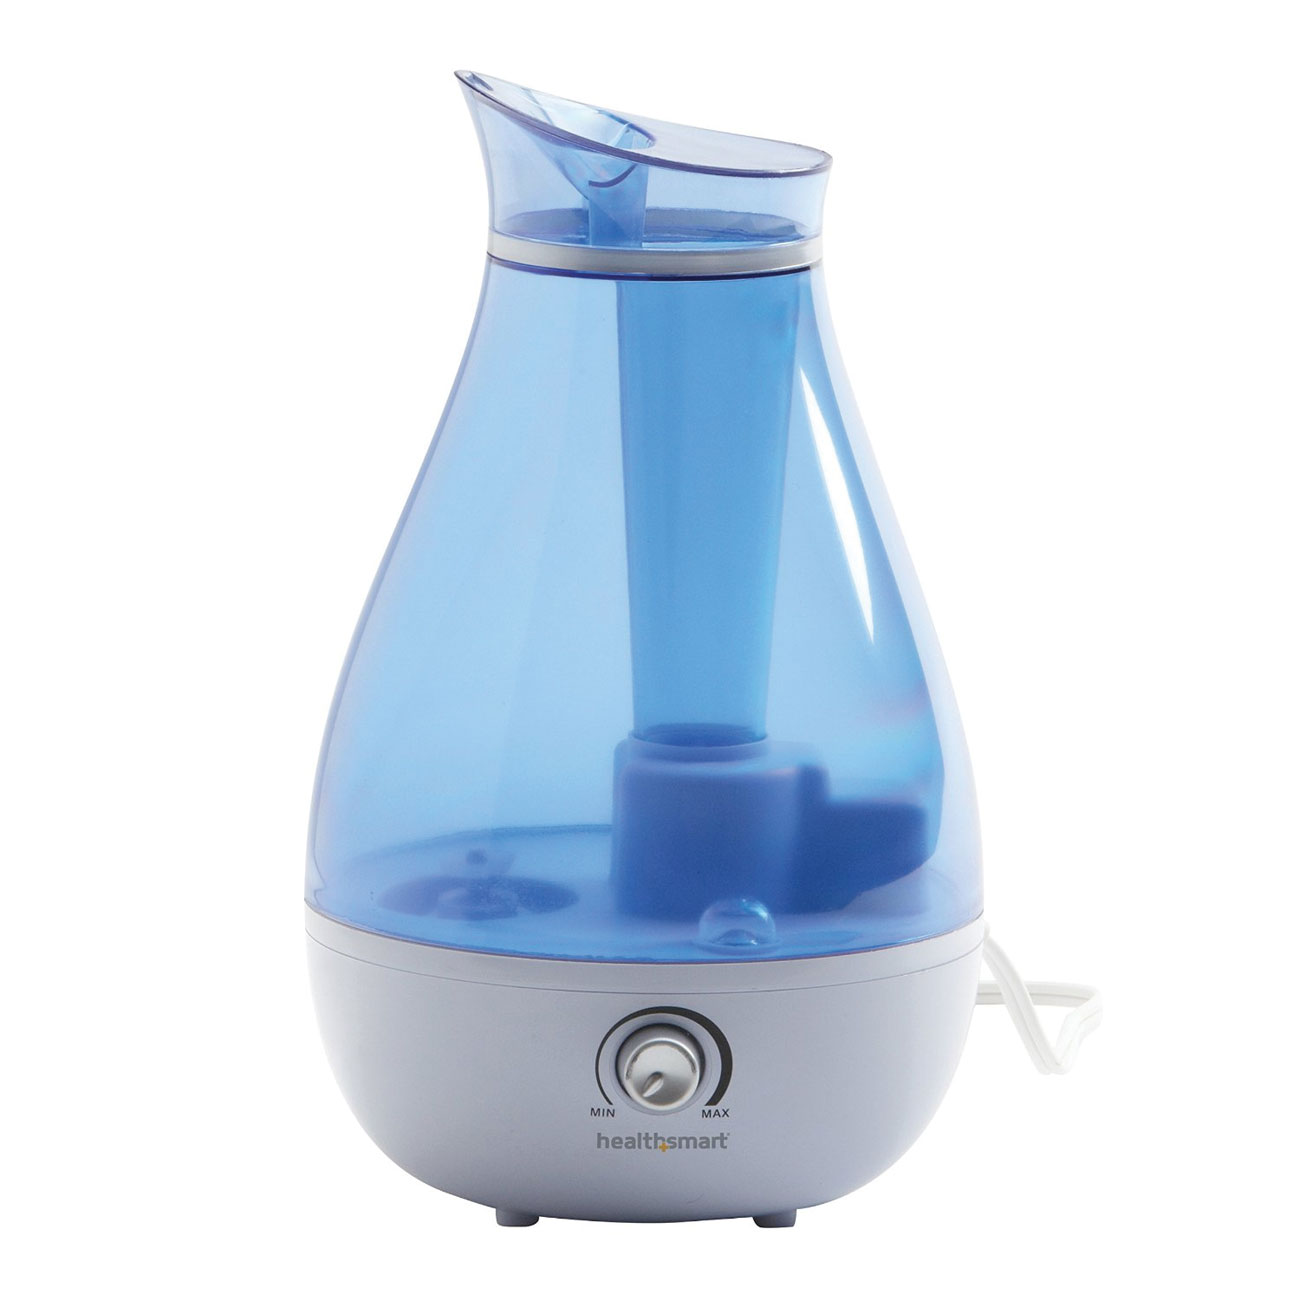 HealthSmart Mist XP Ultrasonic Cool Mist Humidifier